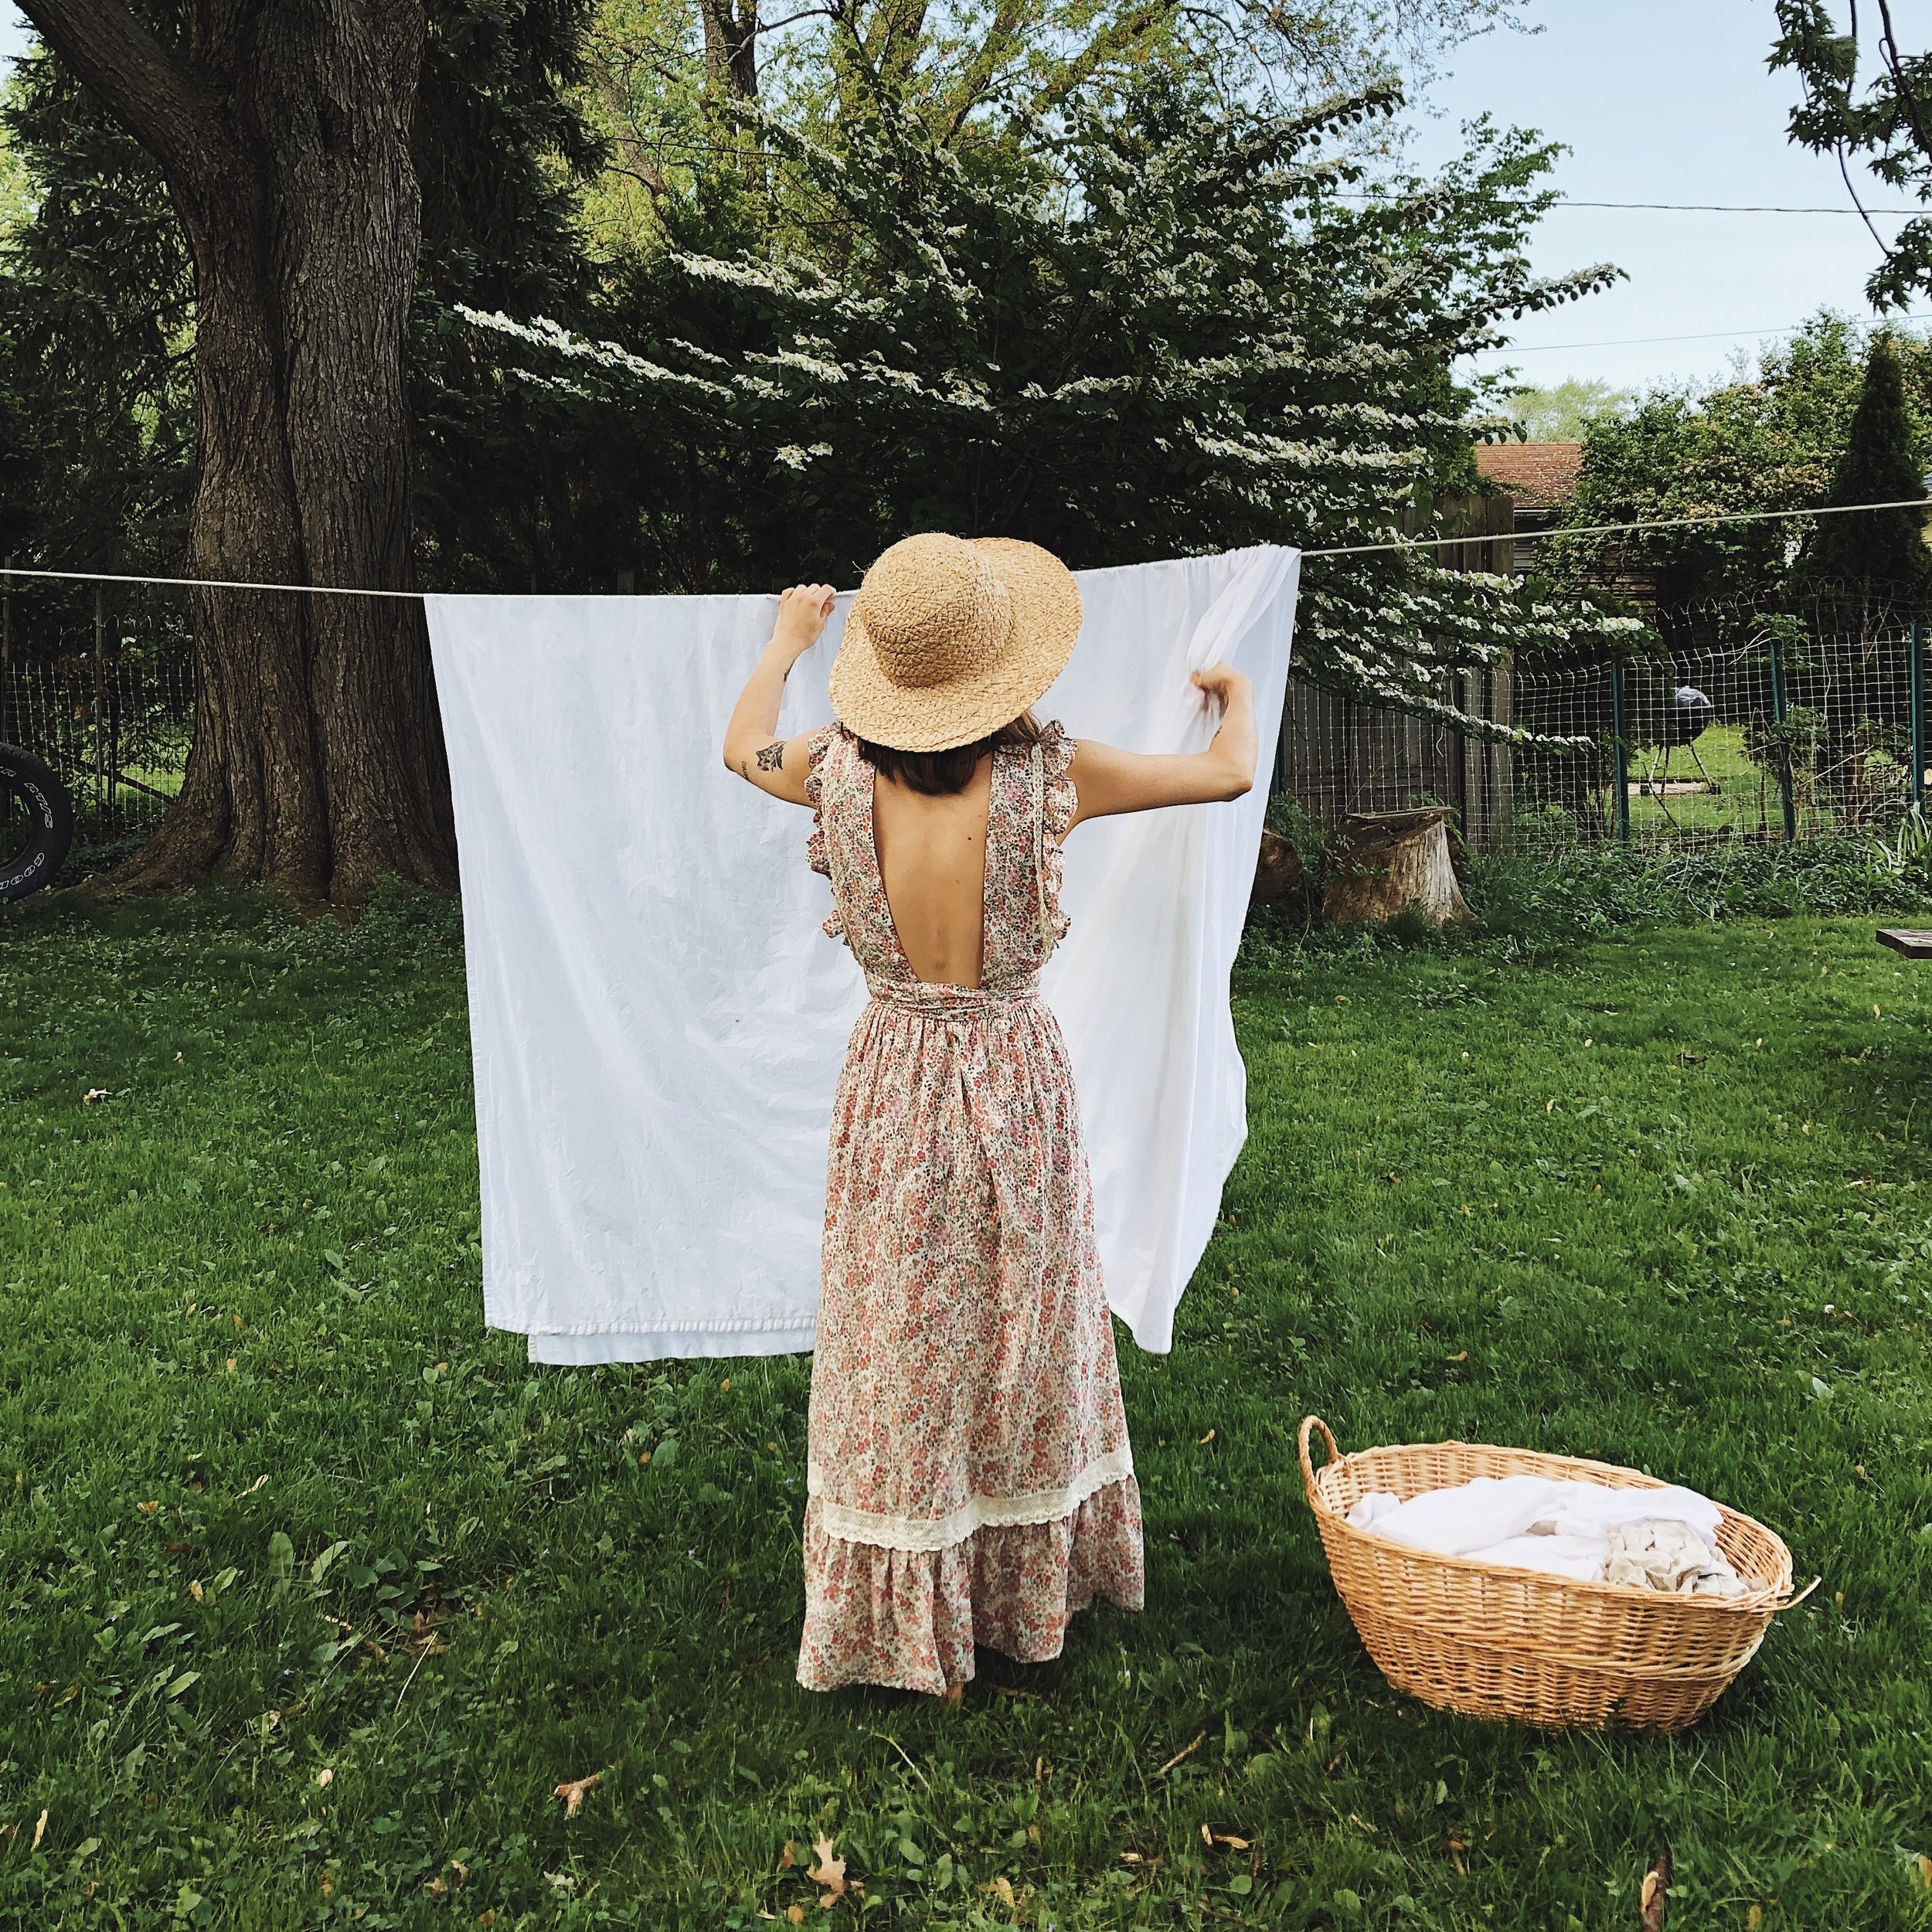 kaetlyn anne laundry sustainable laundry girl in calico